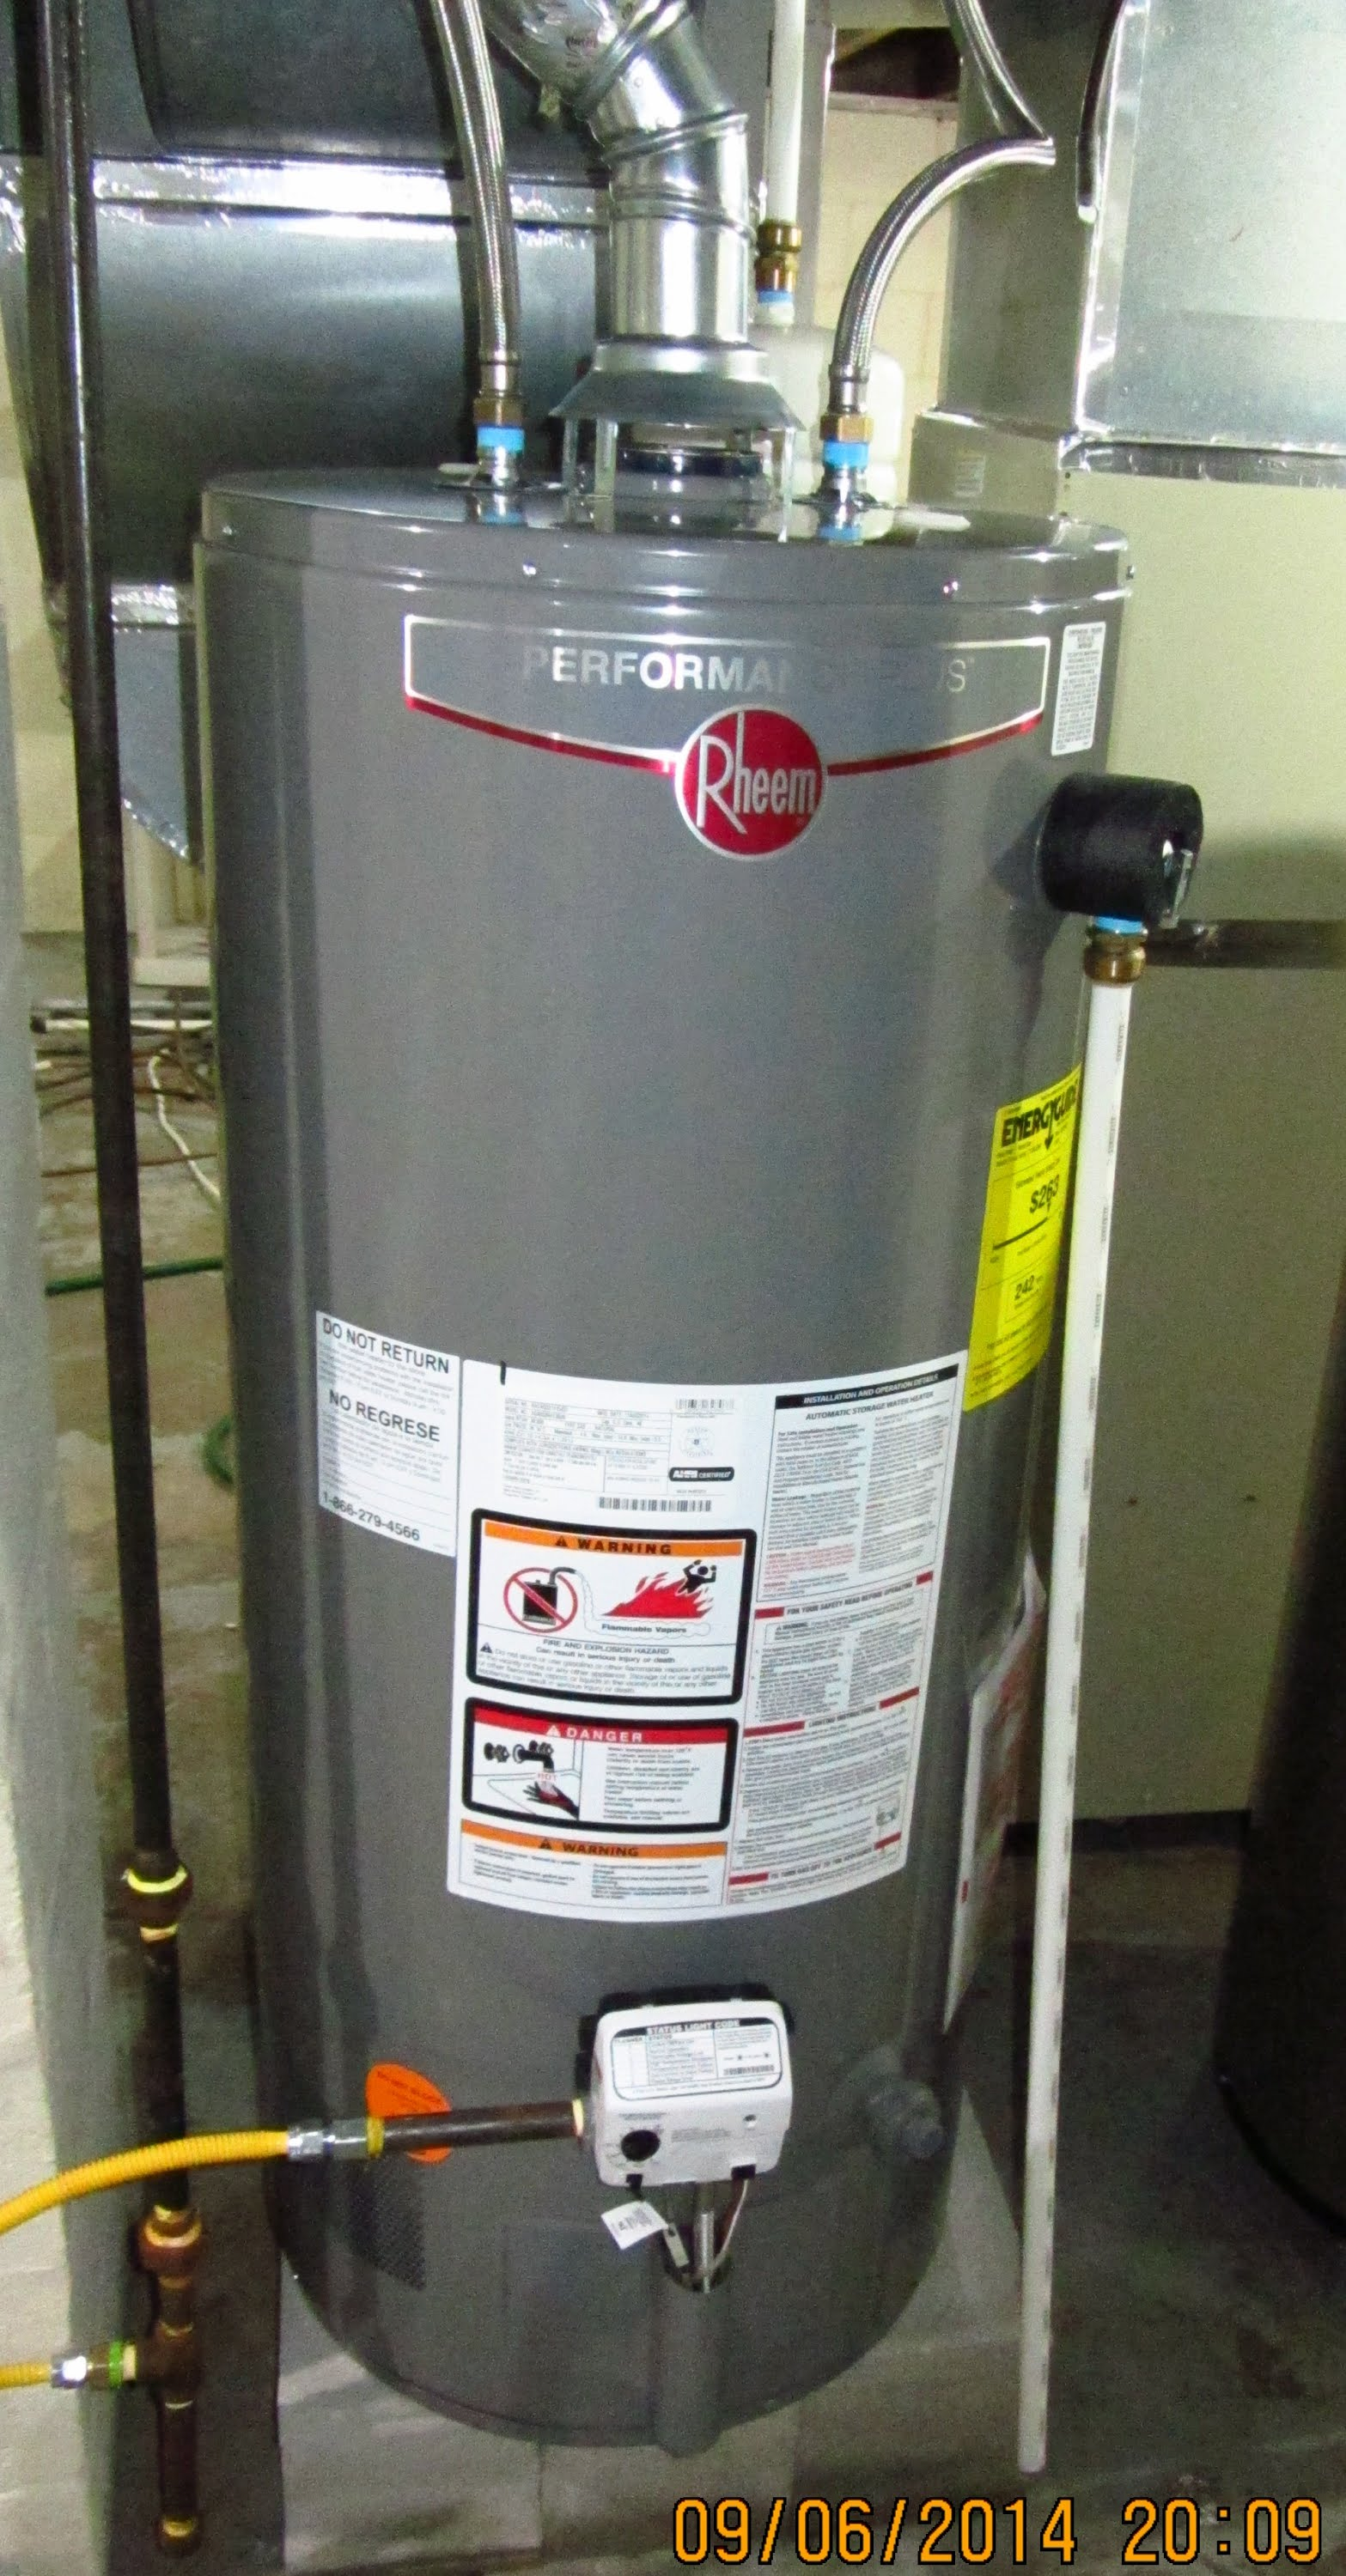 rheem water heater wiring diagram dual element mig welder residential plumbing overview for inspectors course page